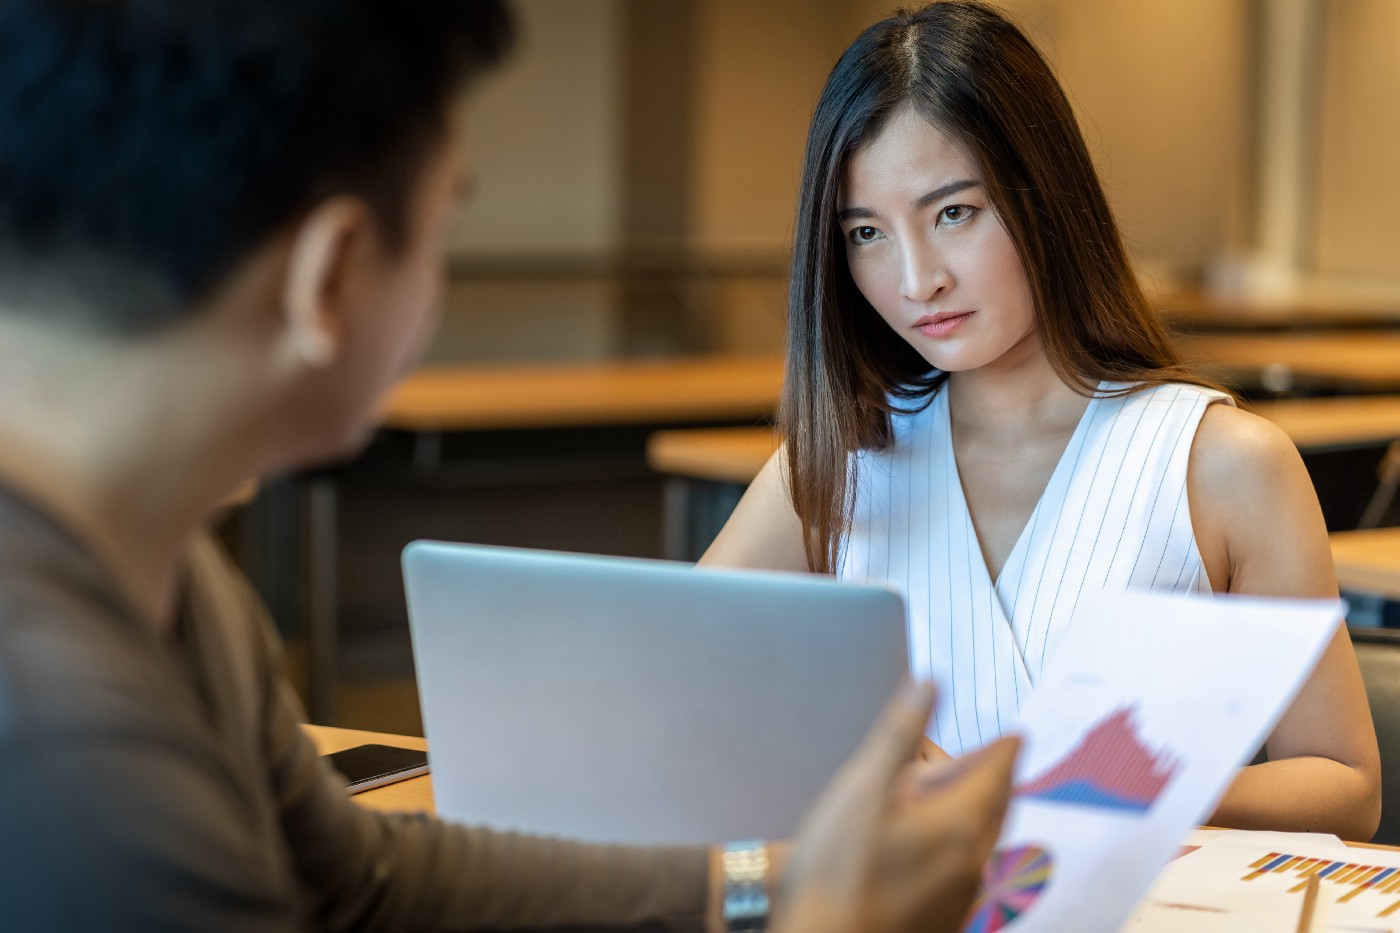 A young woman glares as her boss scolds her for making a mistake on a business report.